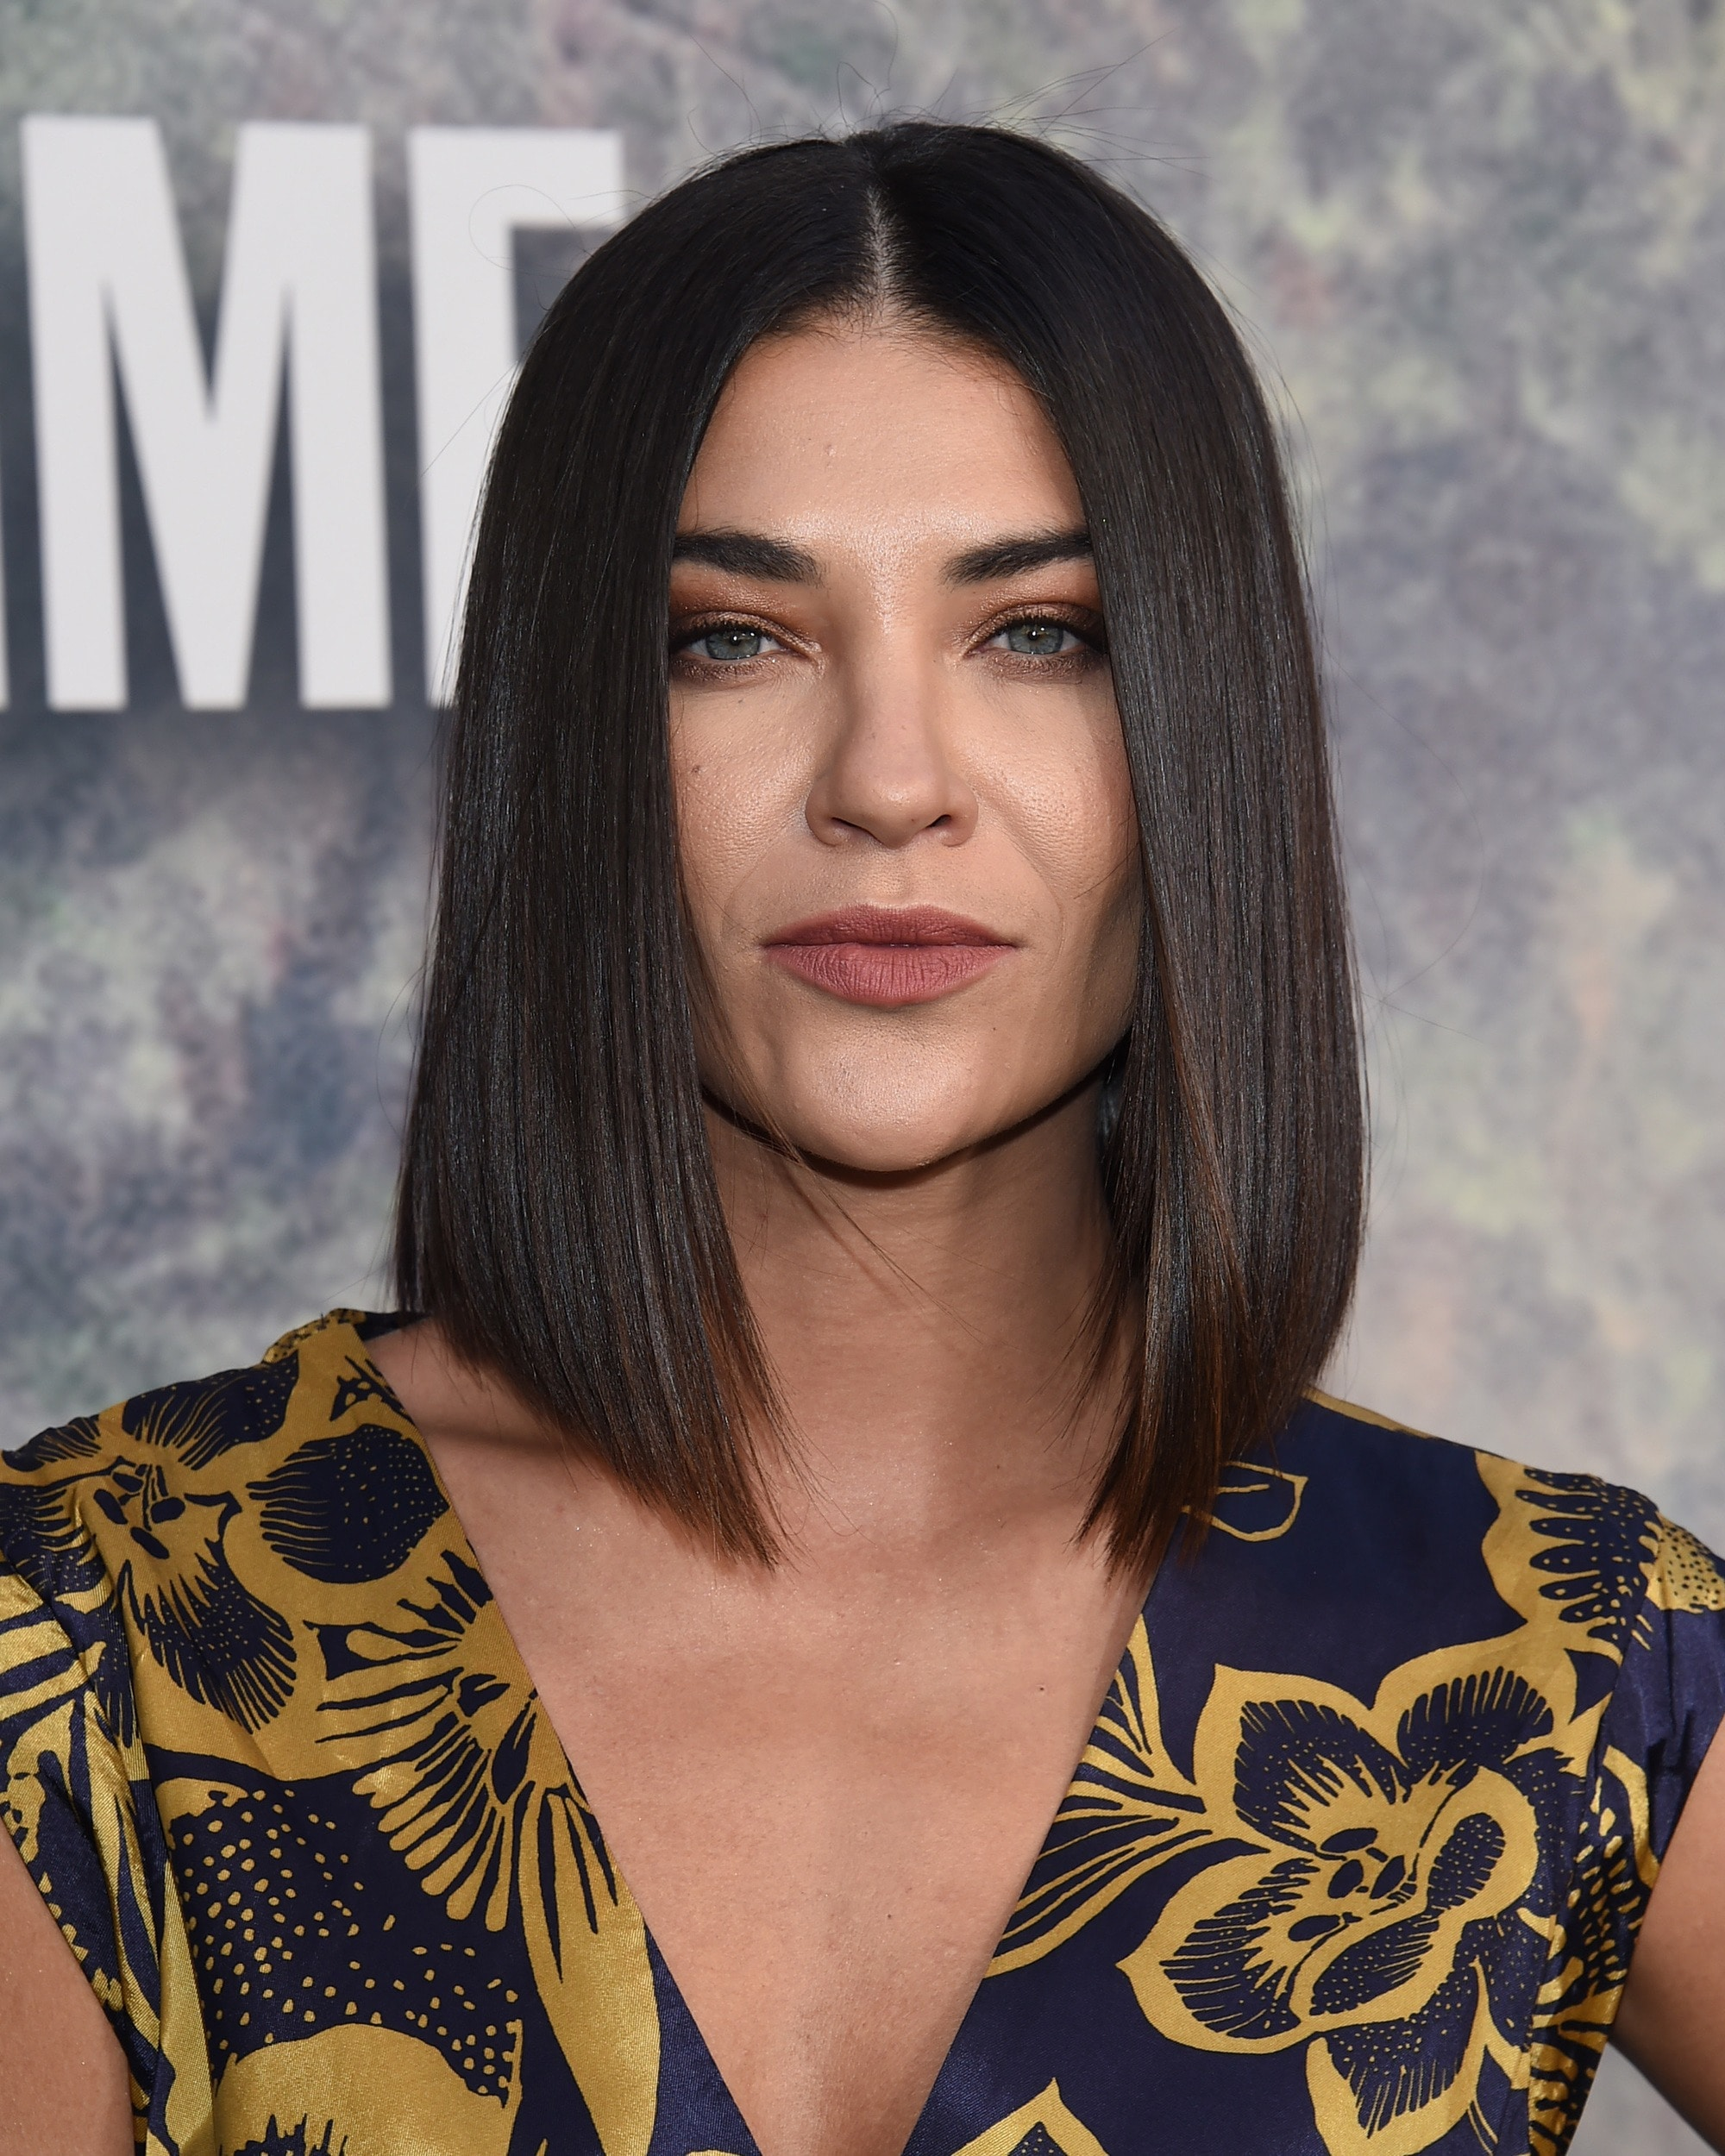 Jessica Szohr with medium dark brown hair styled into an angled blunt cut bob, wearing printed top on the red carpet